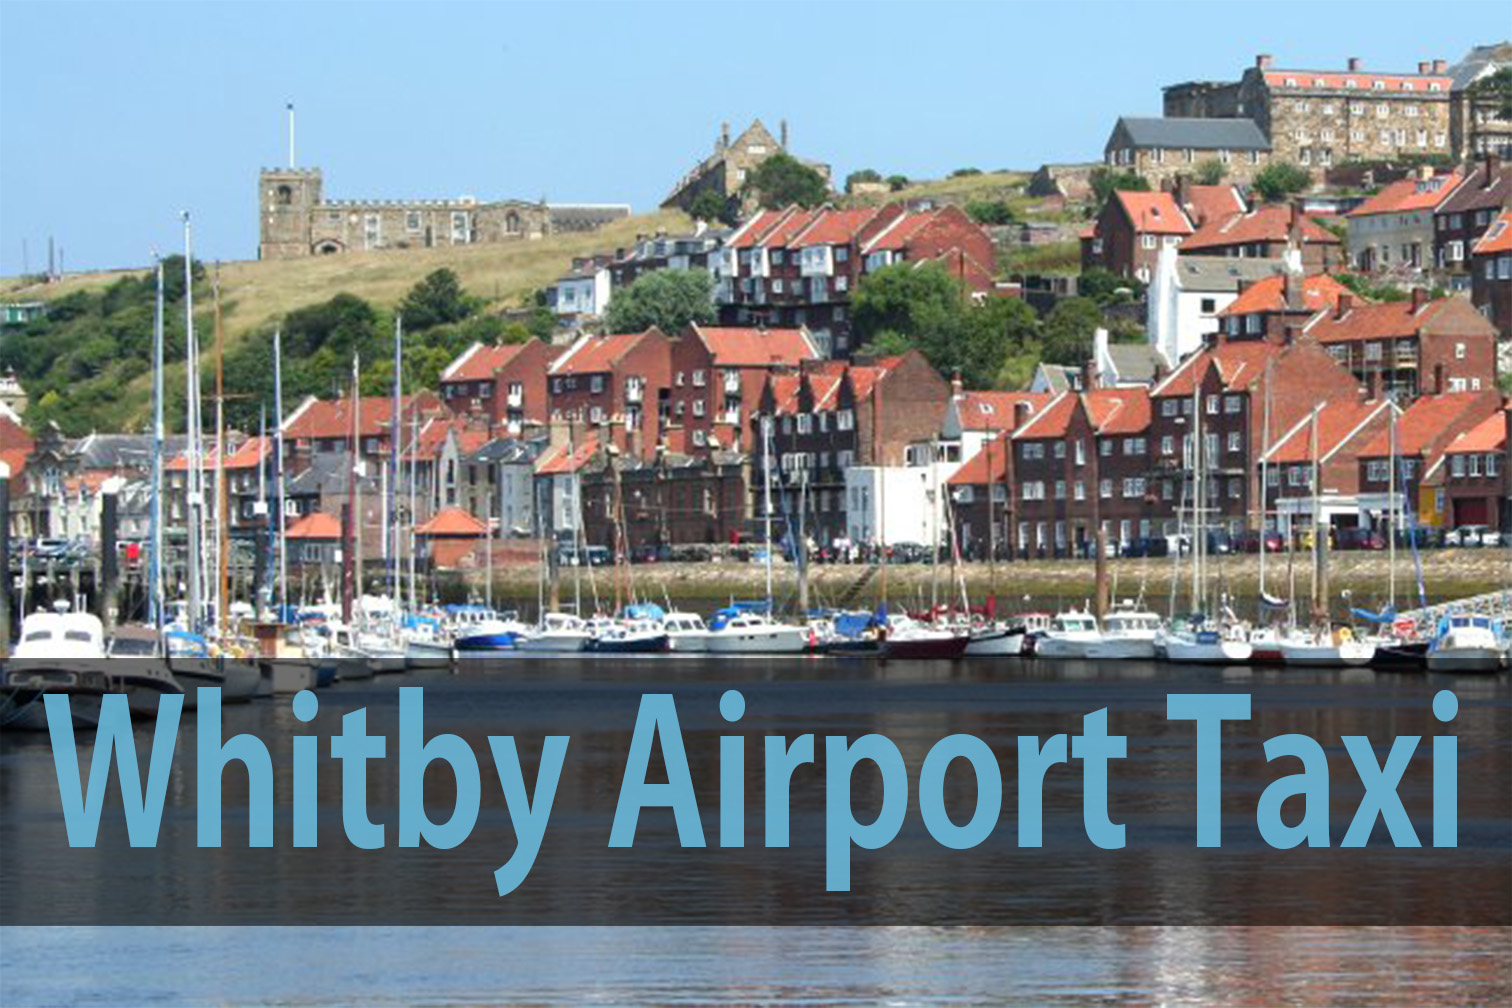 Whitby airport taxi